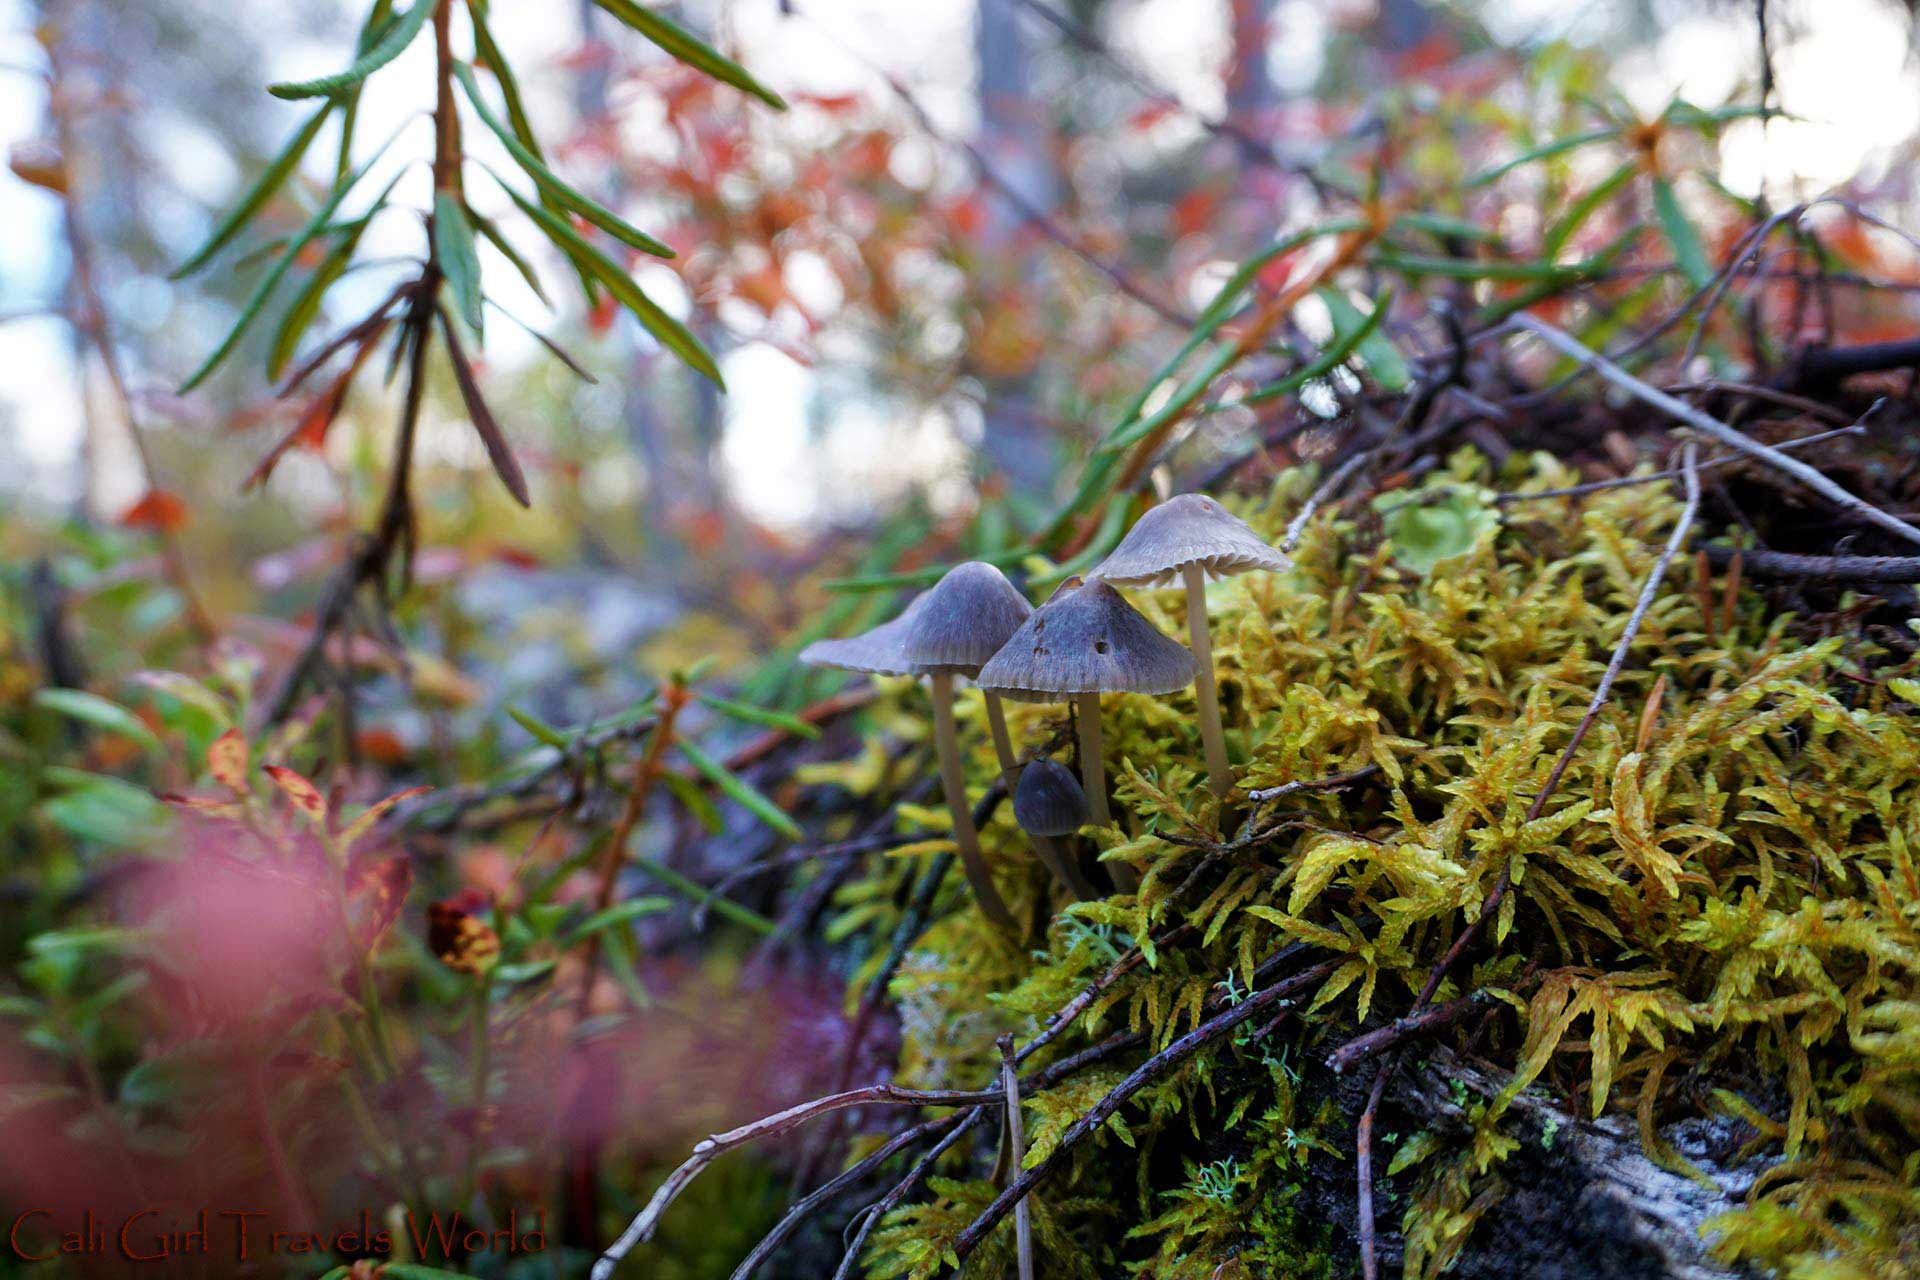 Three grey mushrooms growing on top of a rock in Finland in Autumn.